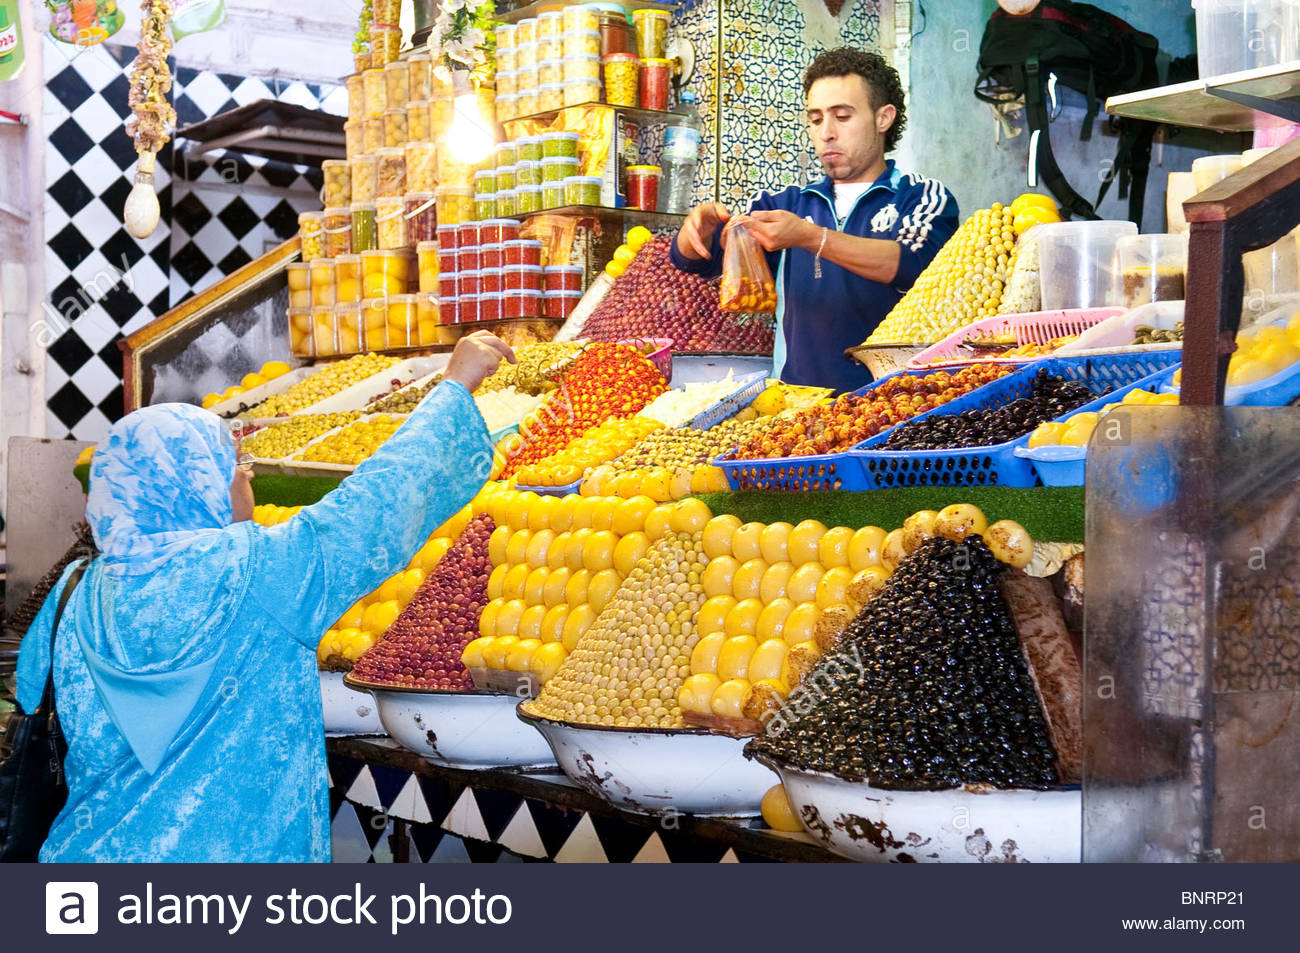 Olives and Preserved Lemons For Sale in the Meknes Morocco Market Stock Photo